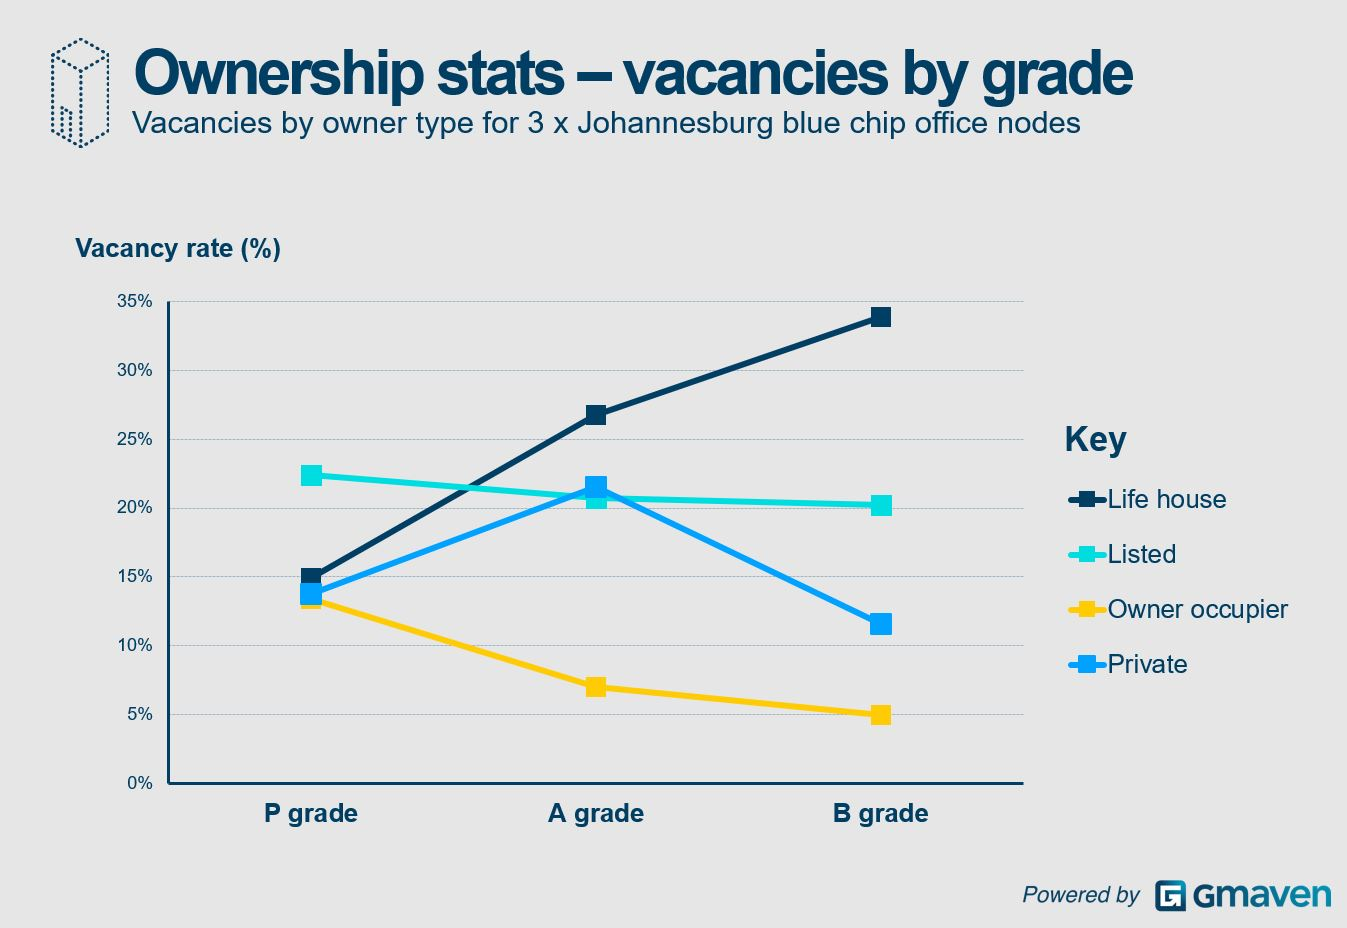 CRE research office vacancies by owner by grade